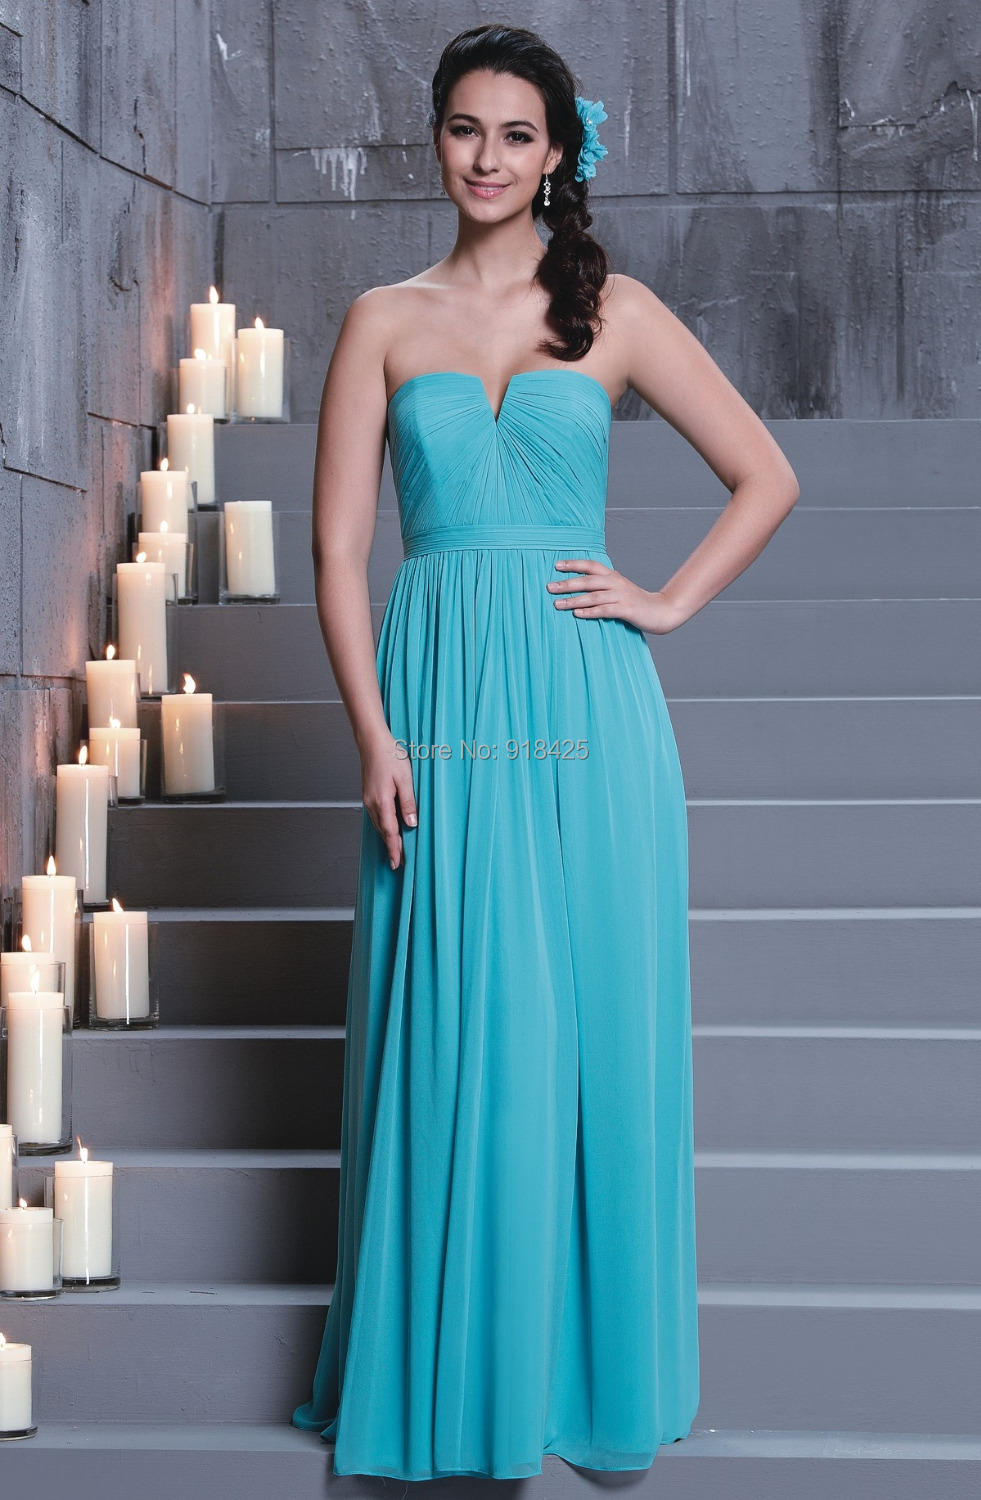 Strapless Turquoise Dress